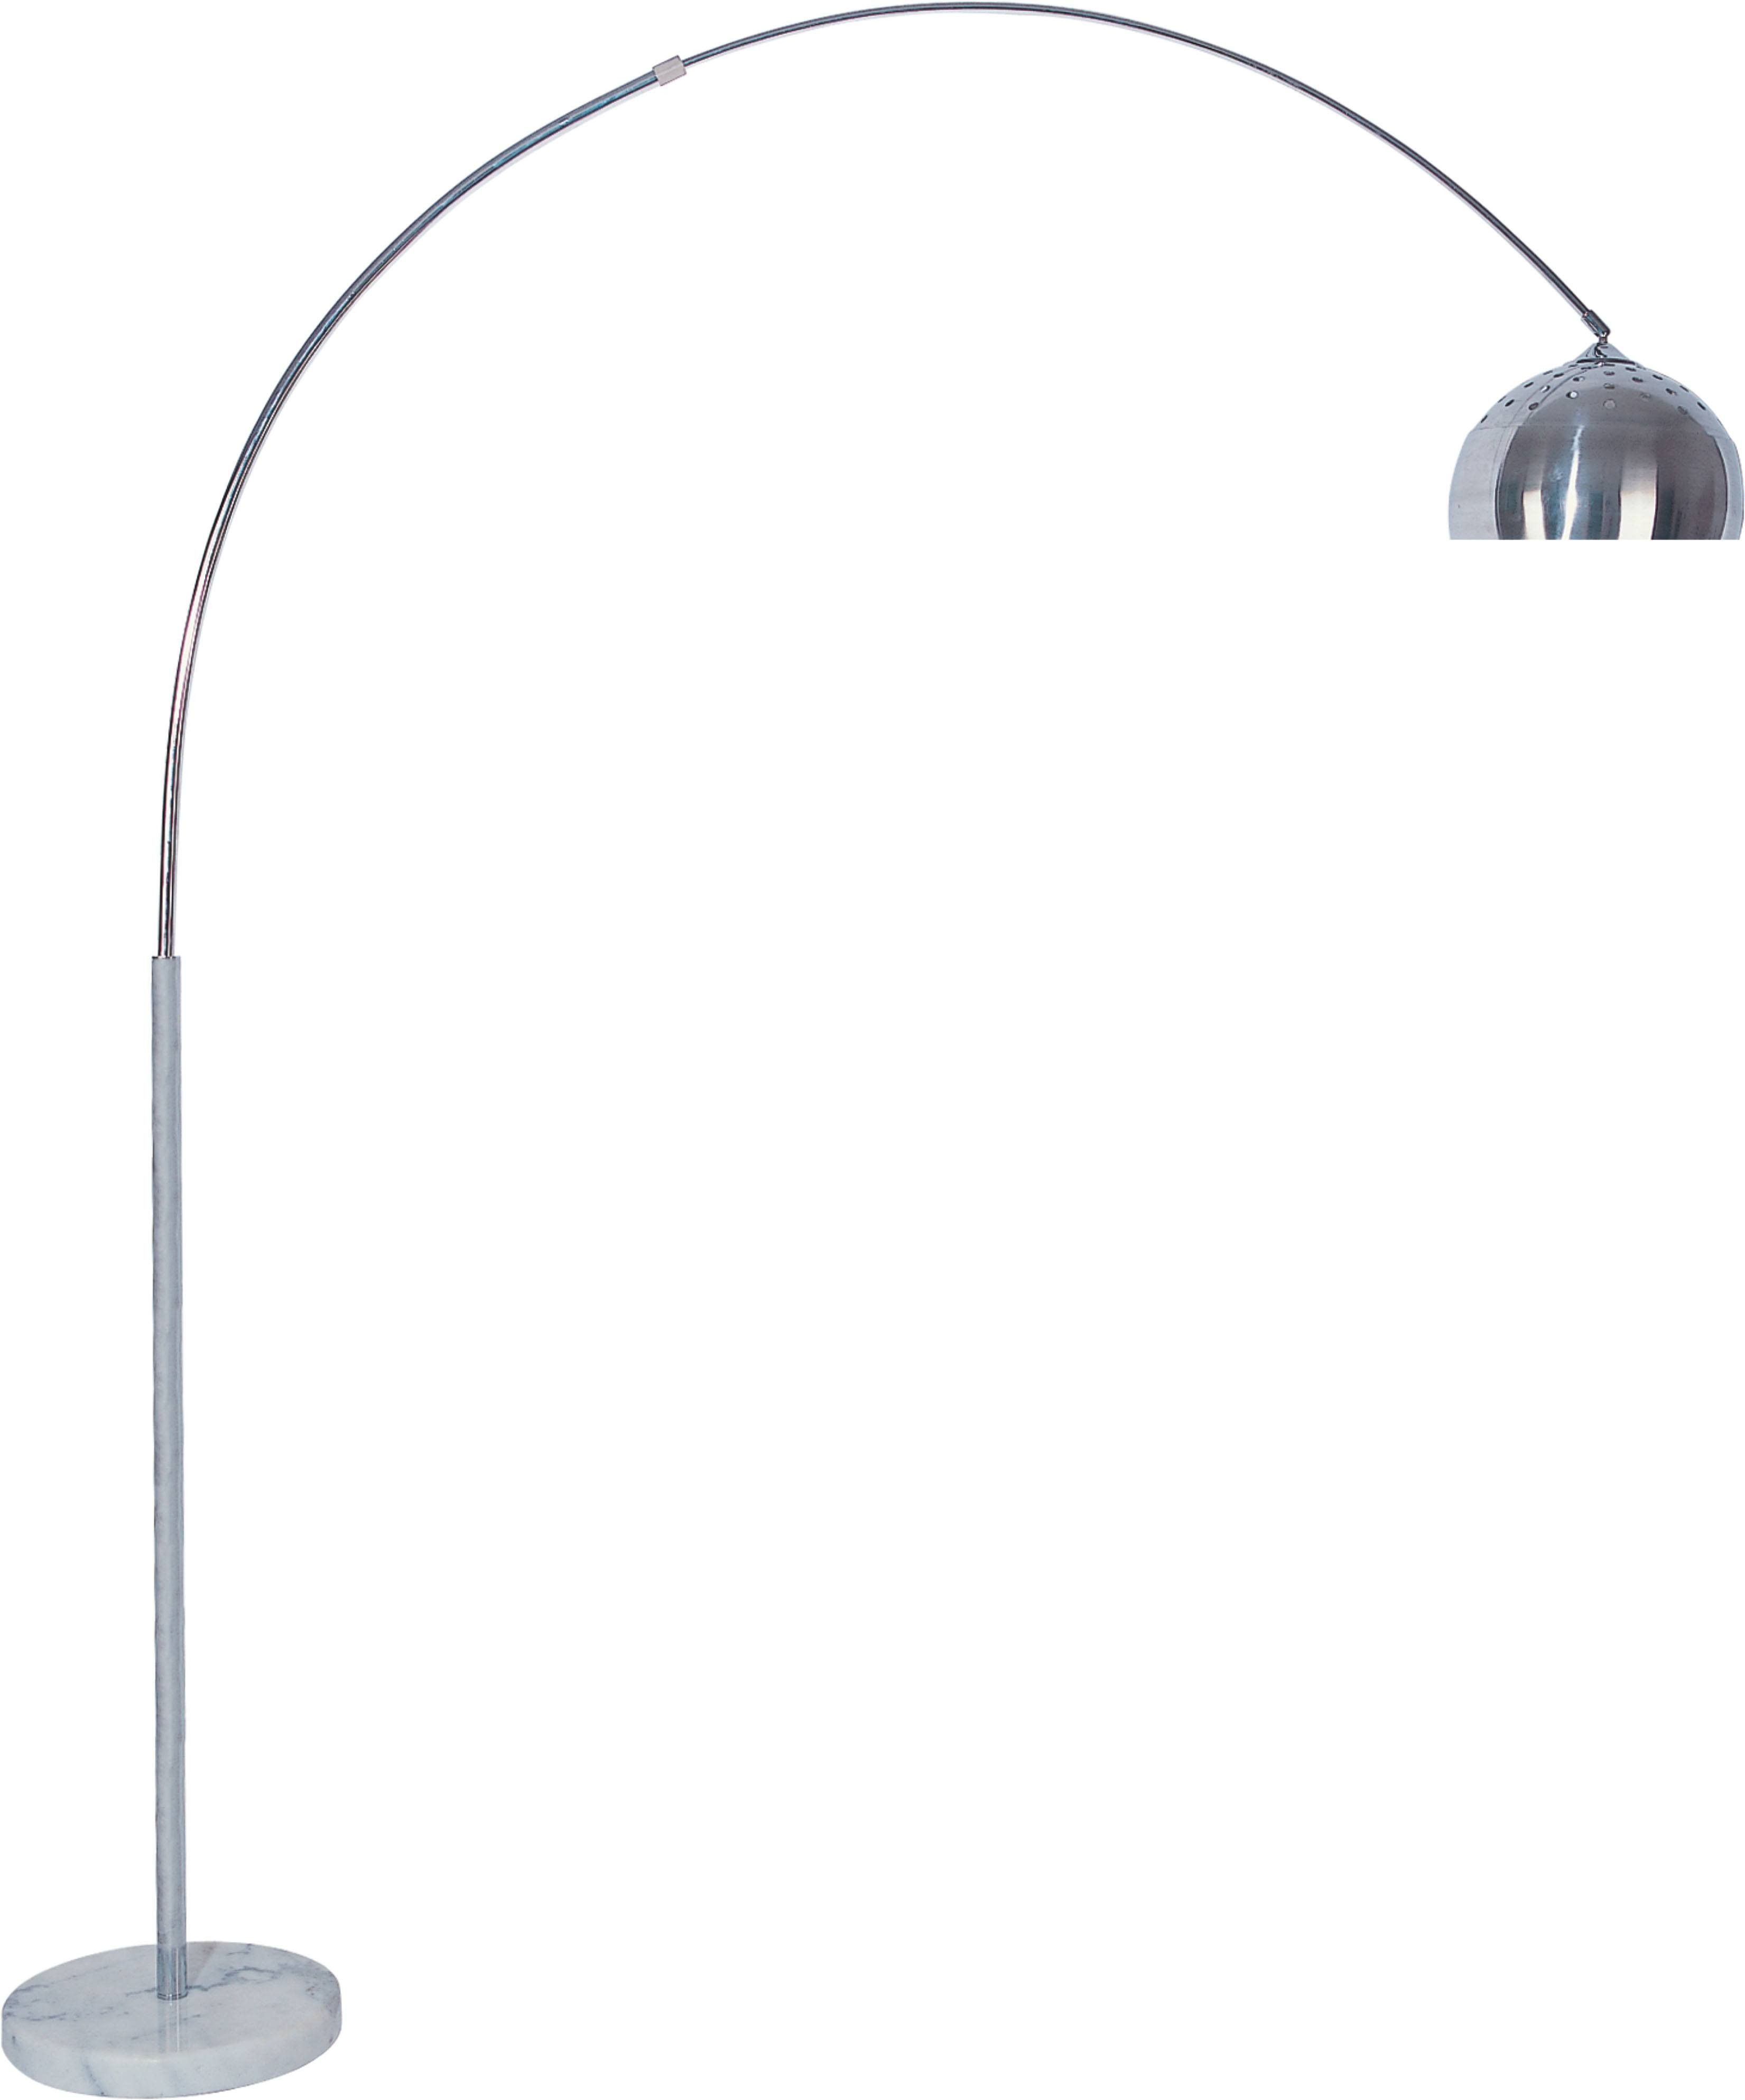 Silver Metal Arched Floor Lamp with Marble Base | Arched